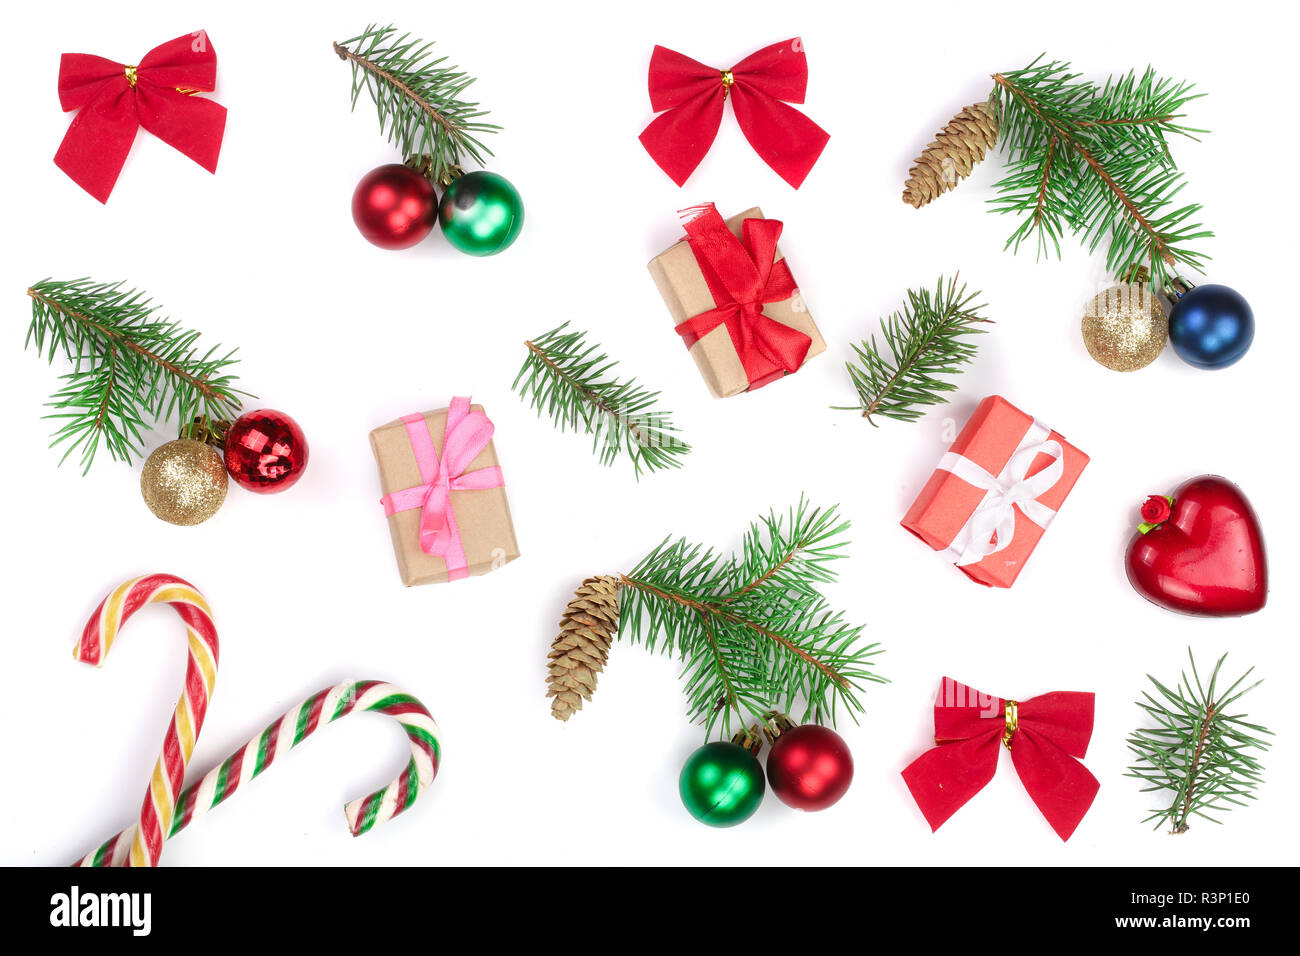 Christmas background with fir branches and decoration isolated on white background. Top view. Flat lay - Stock Image